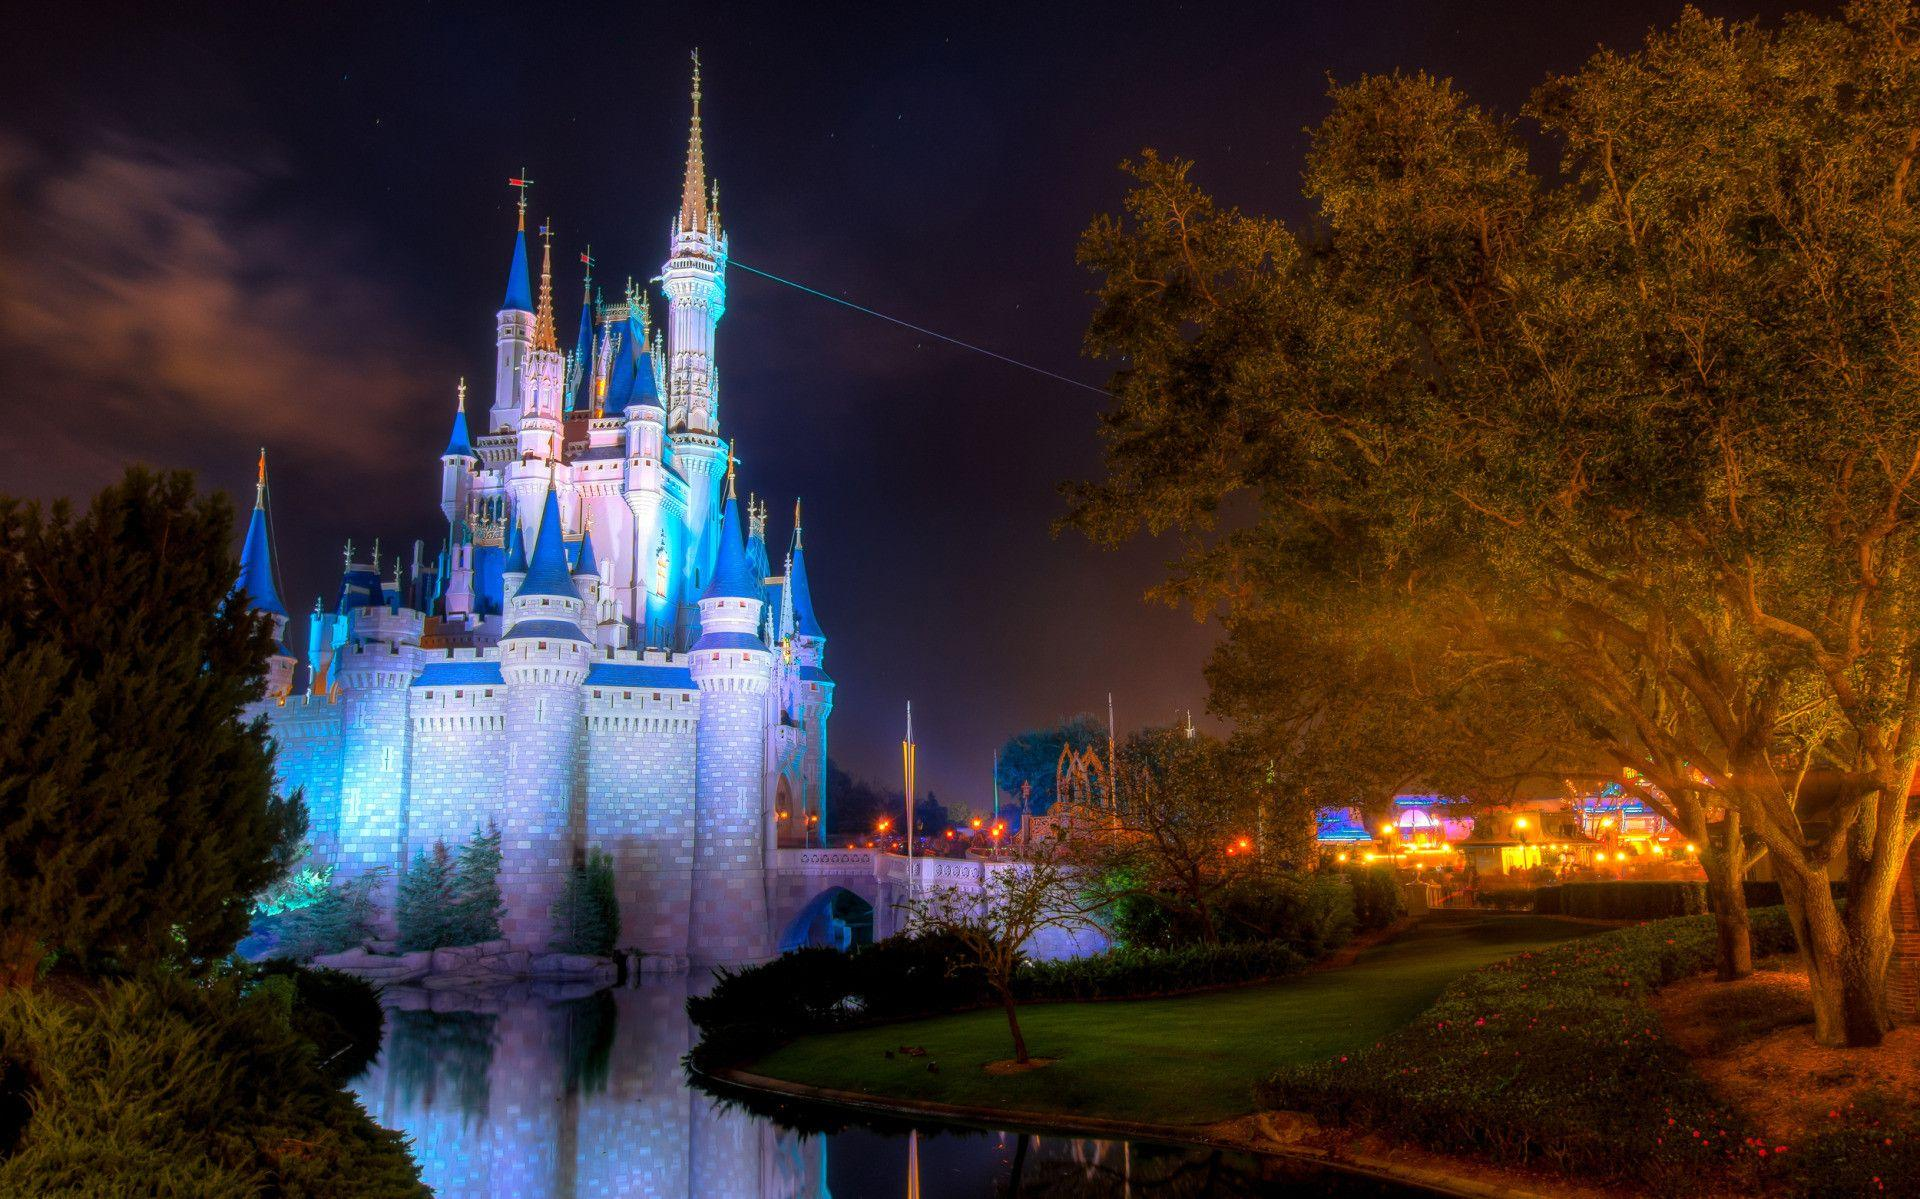 Disney World Wallpaper Desktop (62+ images)